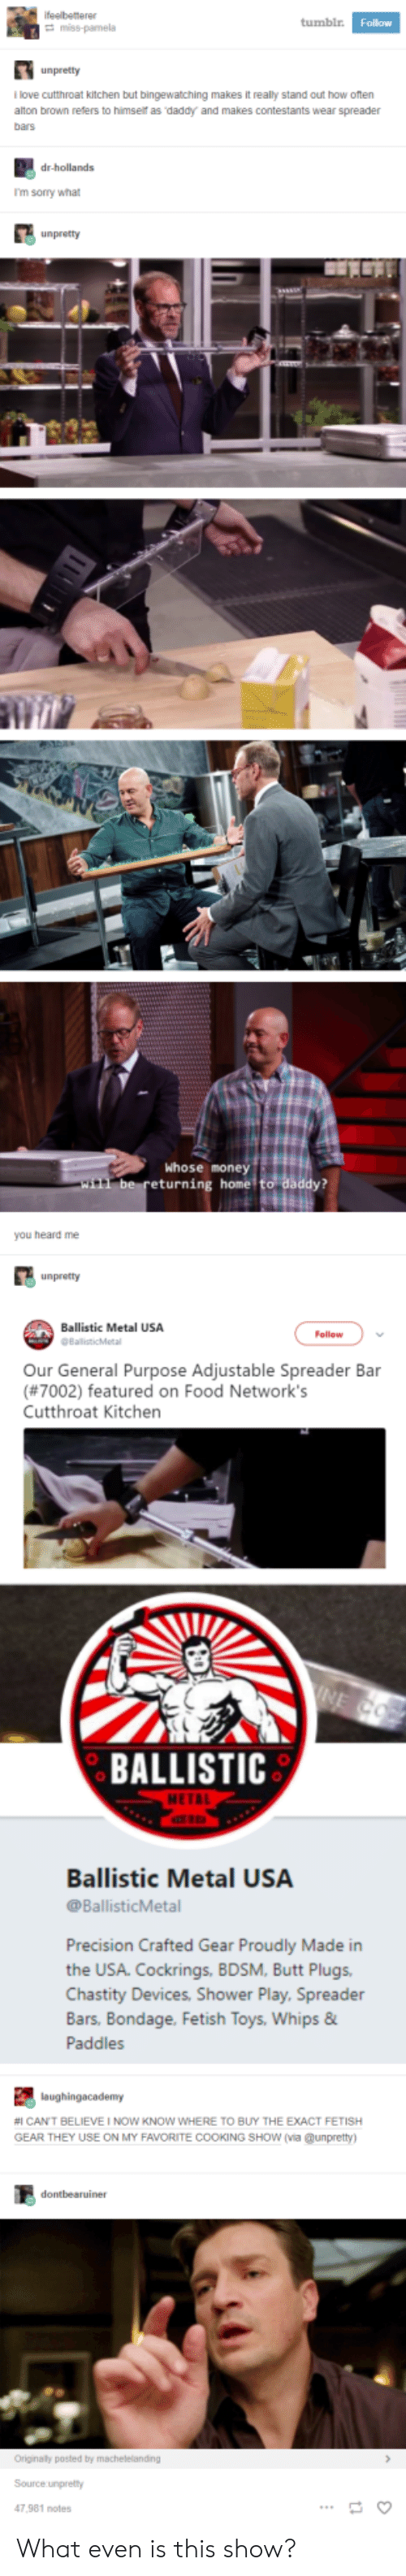 heard me: tumblr  Follow  unpretty  llove cutthroat kitchen but bingewatching makes it really stand out how oten  alton brown refers to himser as daddy and makes contestants wear spreader  bars  dr-hollands  I'm sorry what  Whose money  eturning home  you heard me  unpretty  Ballistic Metal USA  Follow  Our General Purpose Adjustable Spreader Bar  (#7002) featured on Food Network's  Cutthroat Kitchen  BALLISTIC  Ballistic Metal USA  @BallisticMetal  Precision Crafted Gear Proudly Made in  the USA. Cockrings, BDSM, Butt Plugs  Chastity Devices, Shower Play, Spreader  Bars. Bondage. Fetish  Paddles  Toys, Whips &  #1 CANT BELIEVE I NOW KNOW WHERE TO BUY THE EXACT FETISH  GEAR THEY USE ON MY FAVORITE COOKING SHow (via @unpretty  Source unpretty  47,981 notes What even is this show?